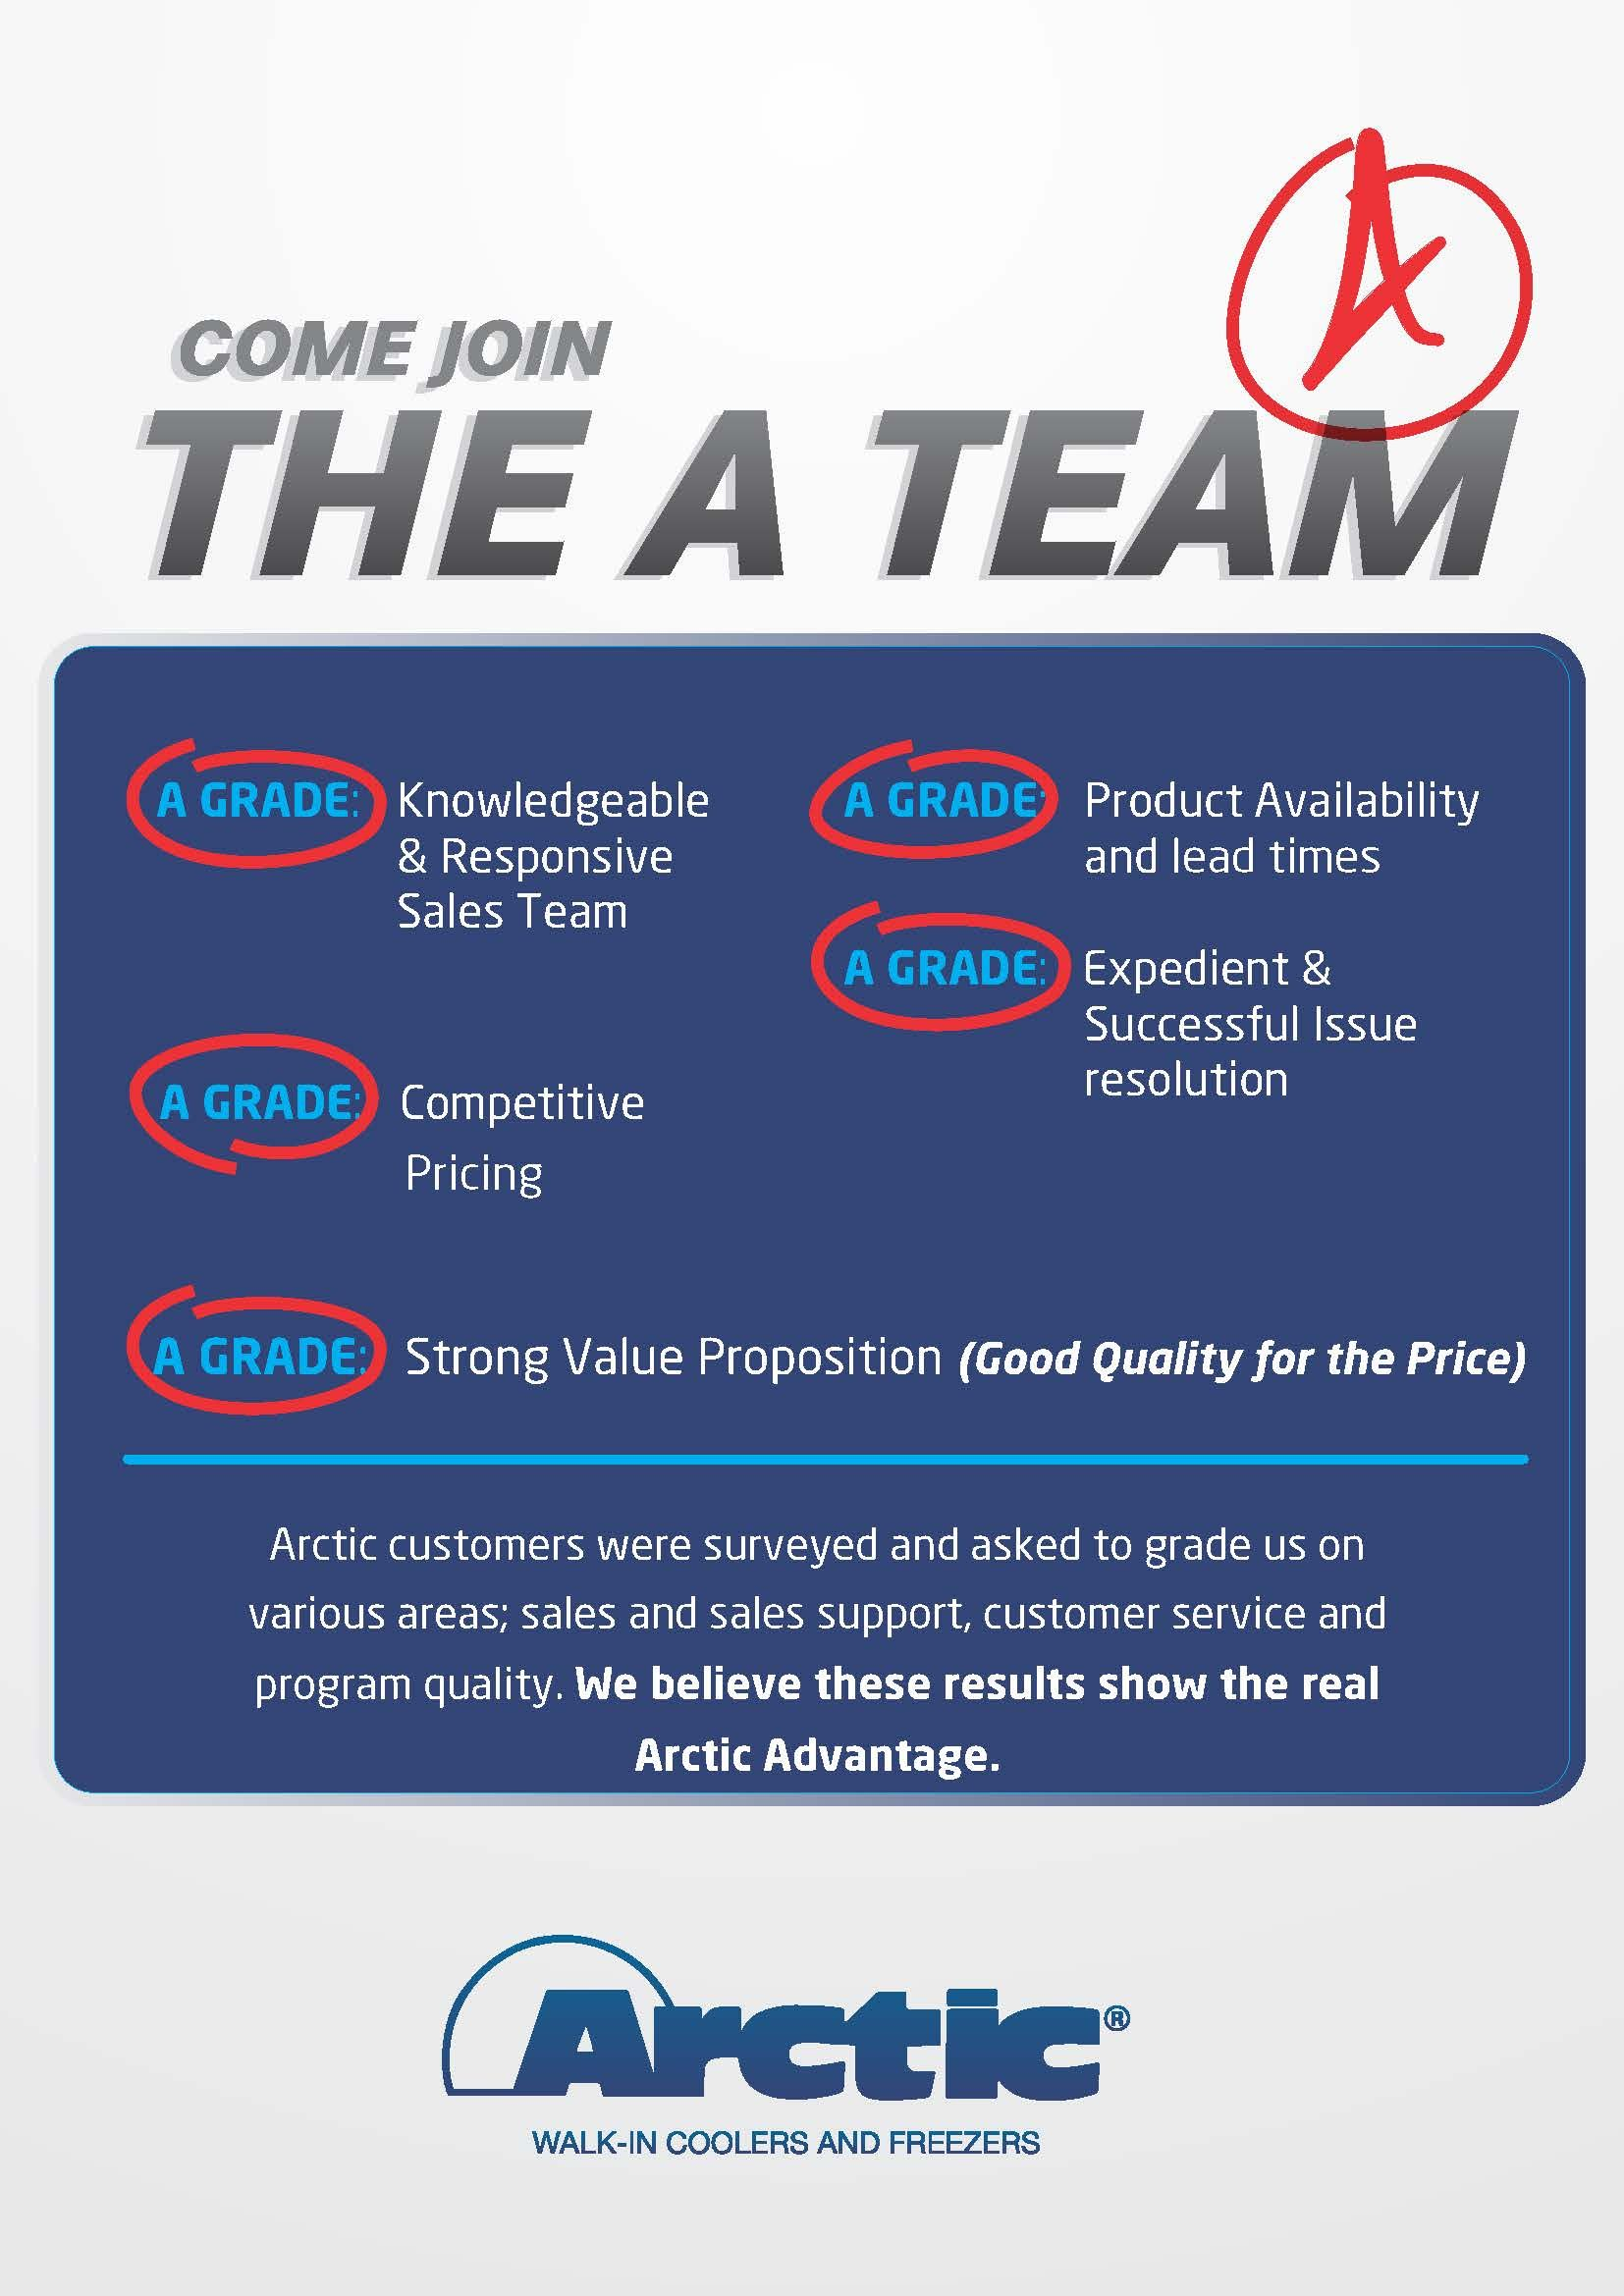 The real Arctic Advantage is our prople+ service walk in